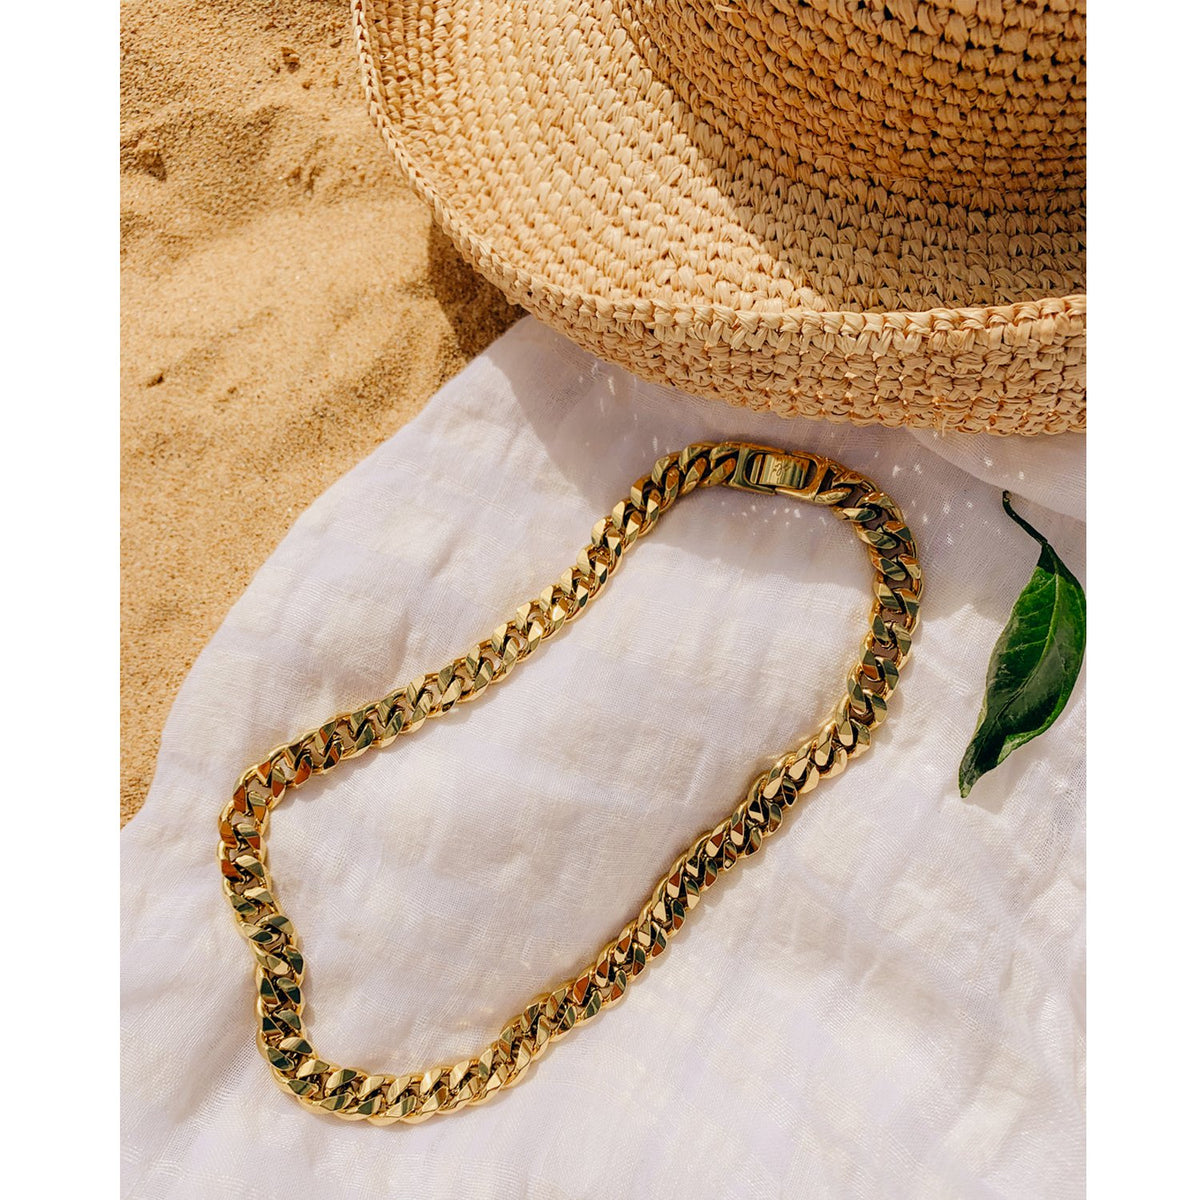 A flatlay of a chunky curb chain necklace laying on a blanket in the sand